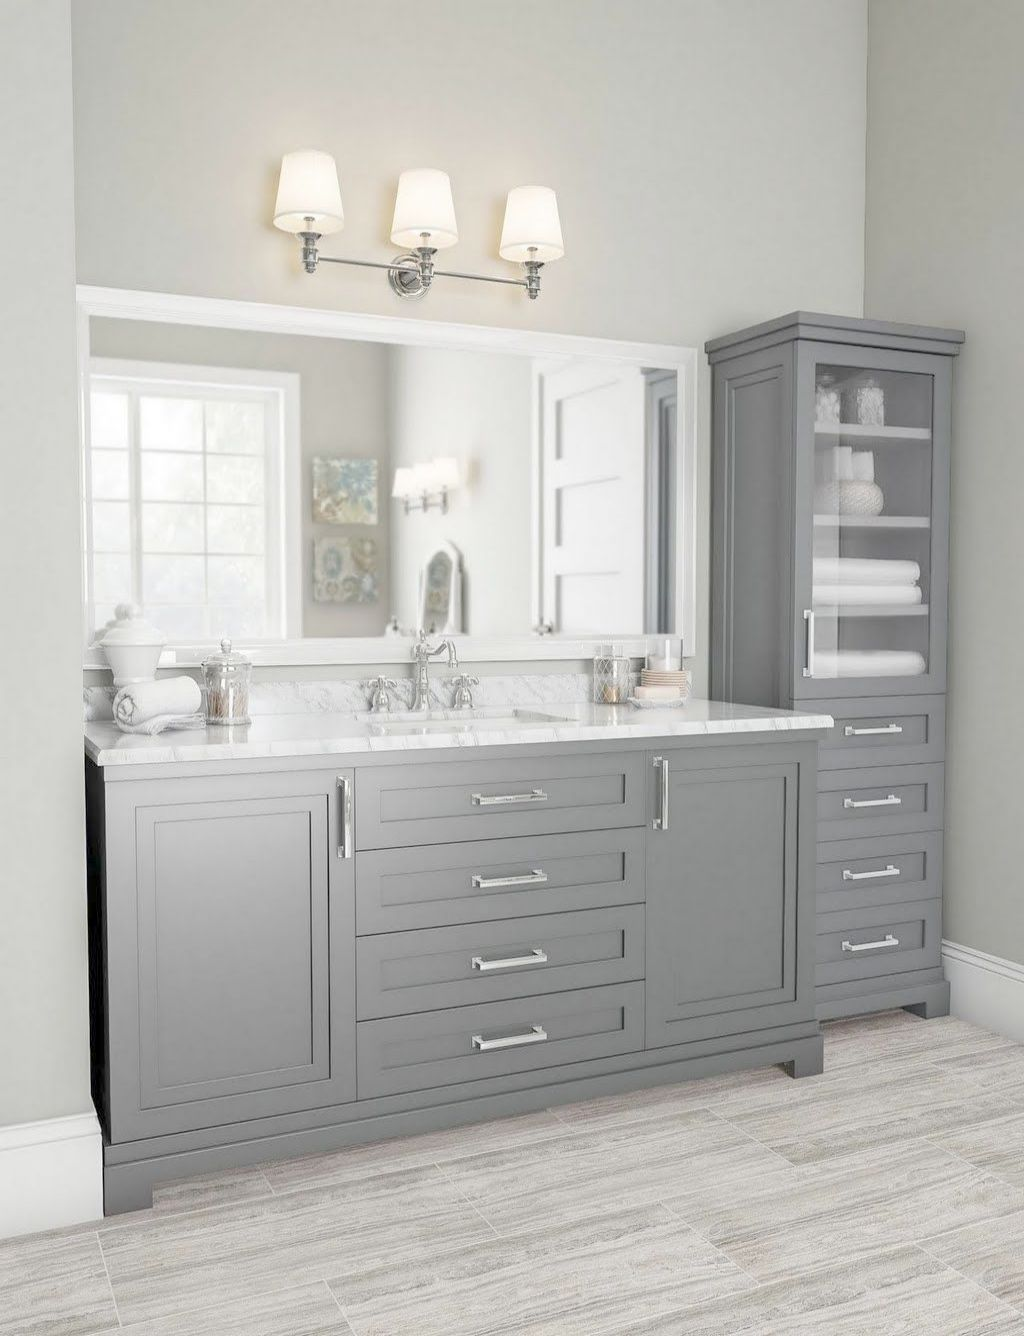 Bathroom Medicine Cabinets Near Me Or Elegant Bathrooms Croydon Some Bathroom Cabinets Bathroom Vanity Decor Farmhouse Bathroom Vanity Bathroom Remodel Master